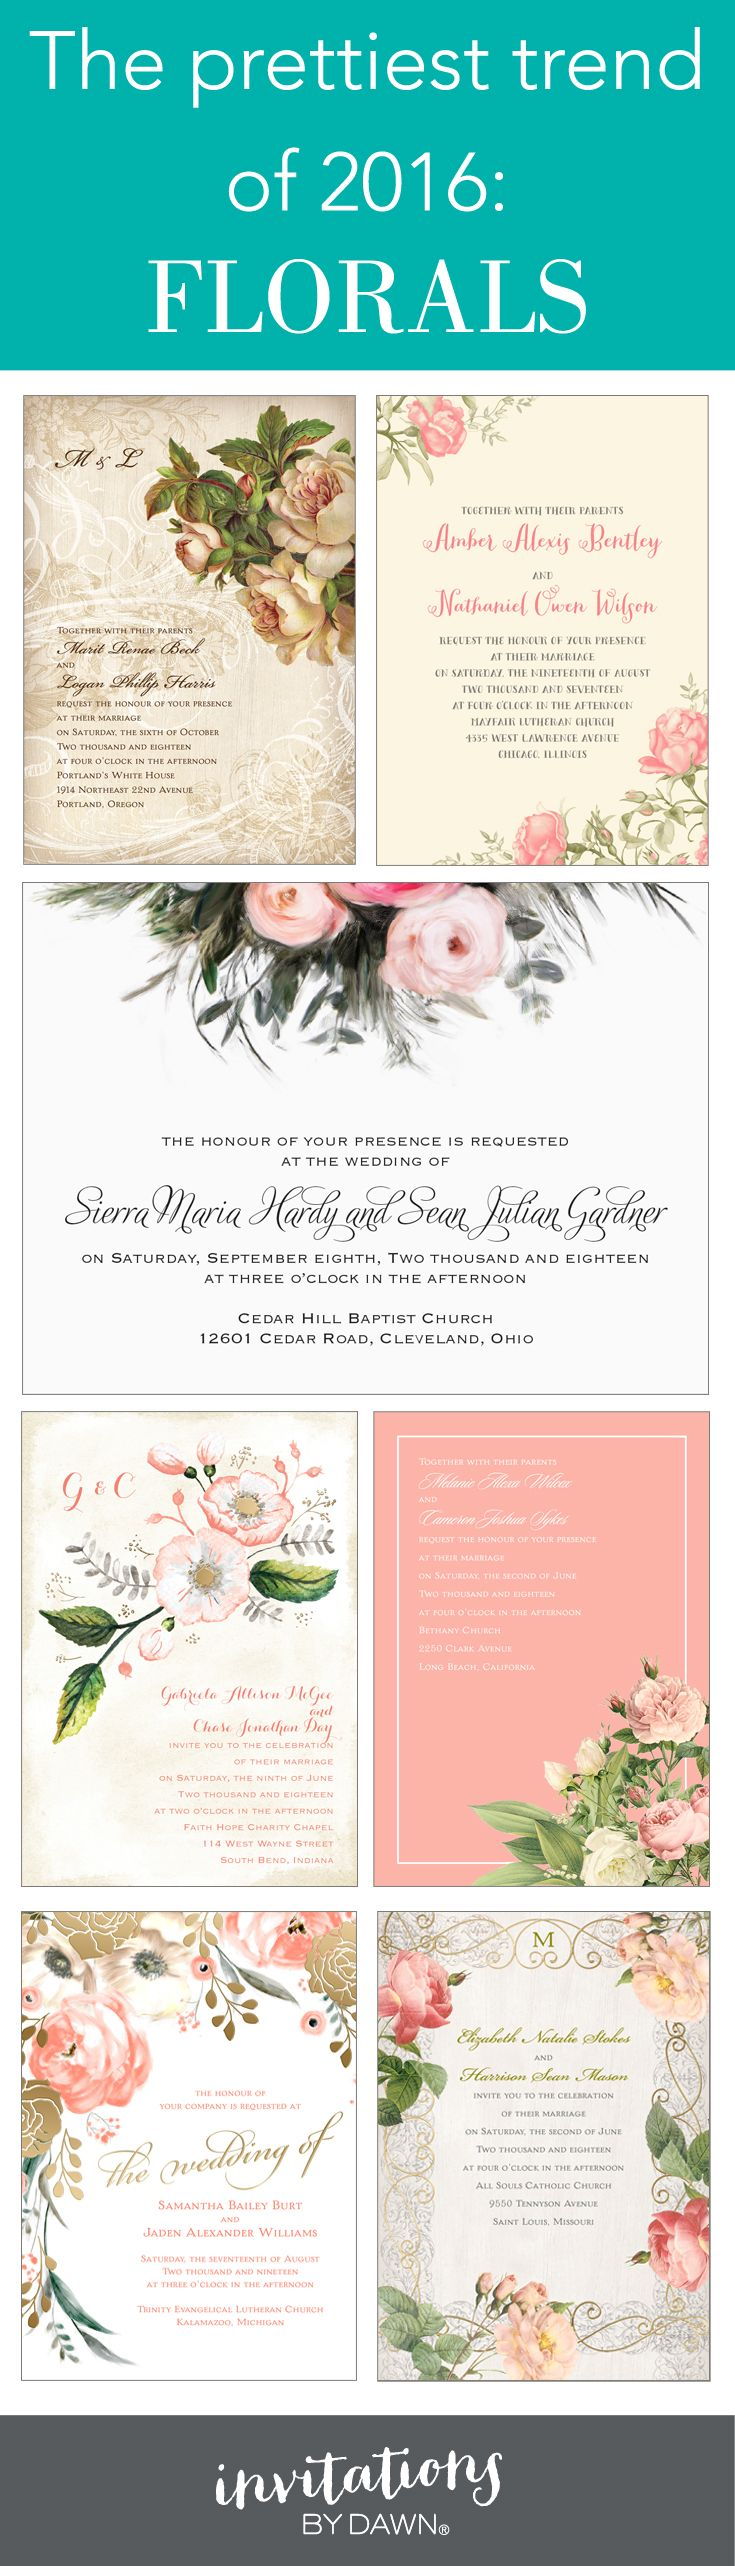 wildflower wedding invitation templates%0A Trending now  Floral wedding invitations